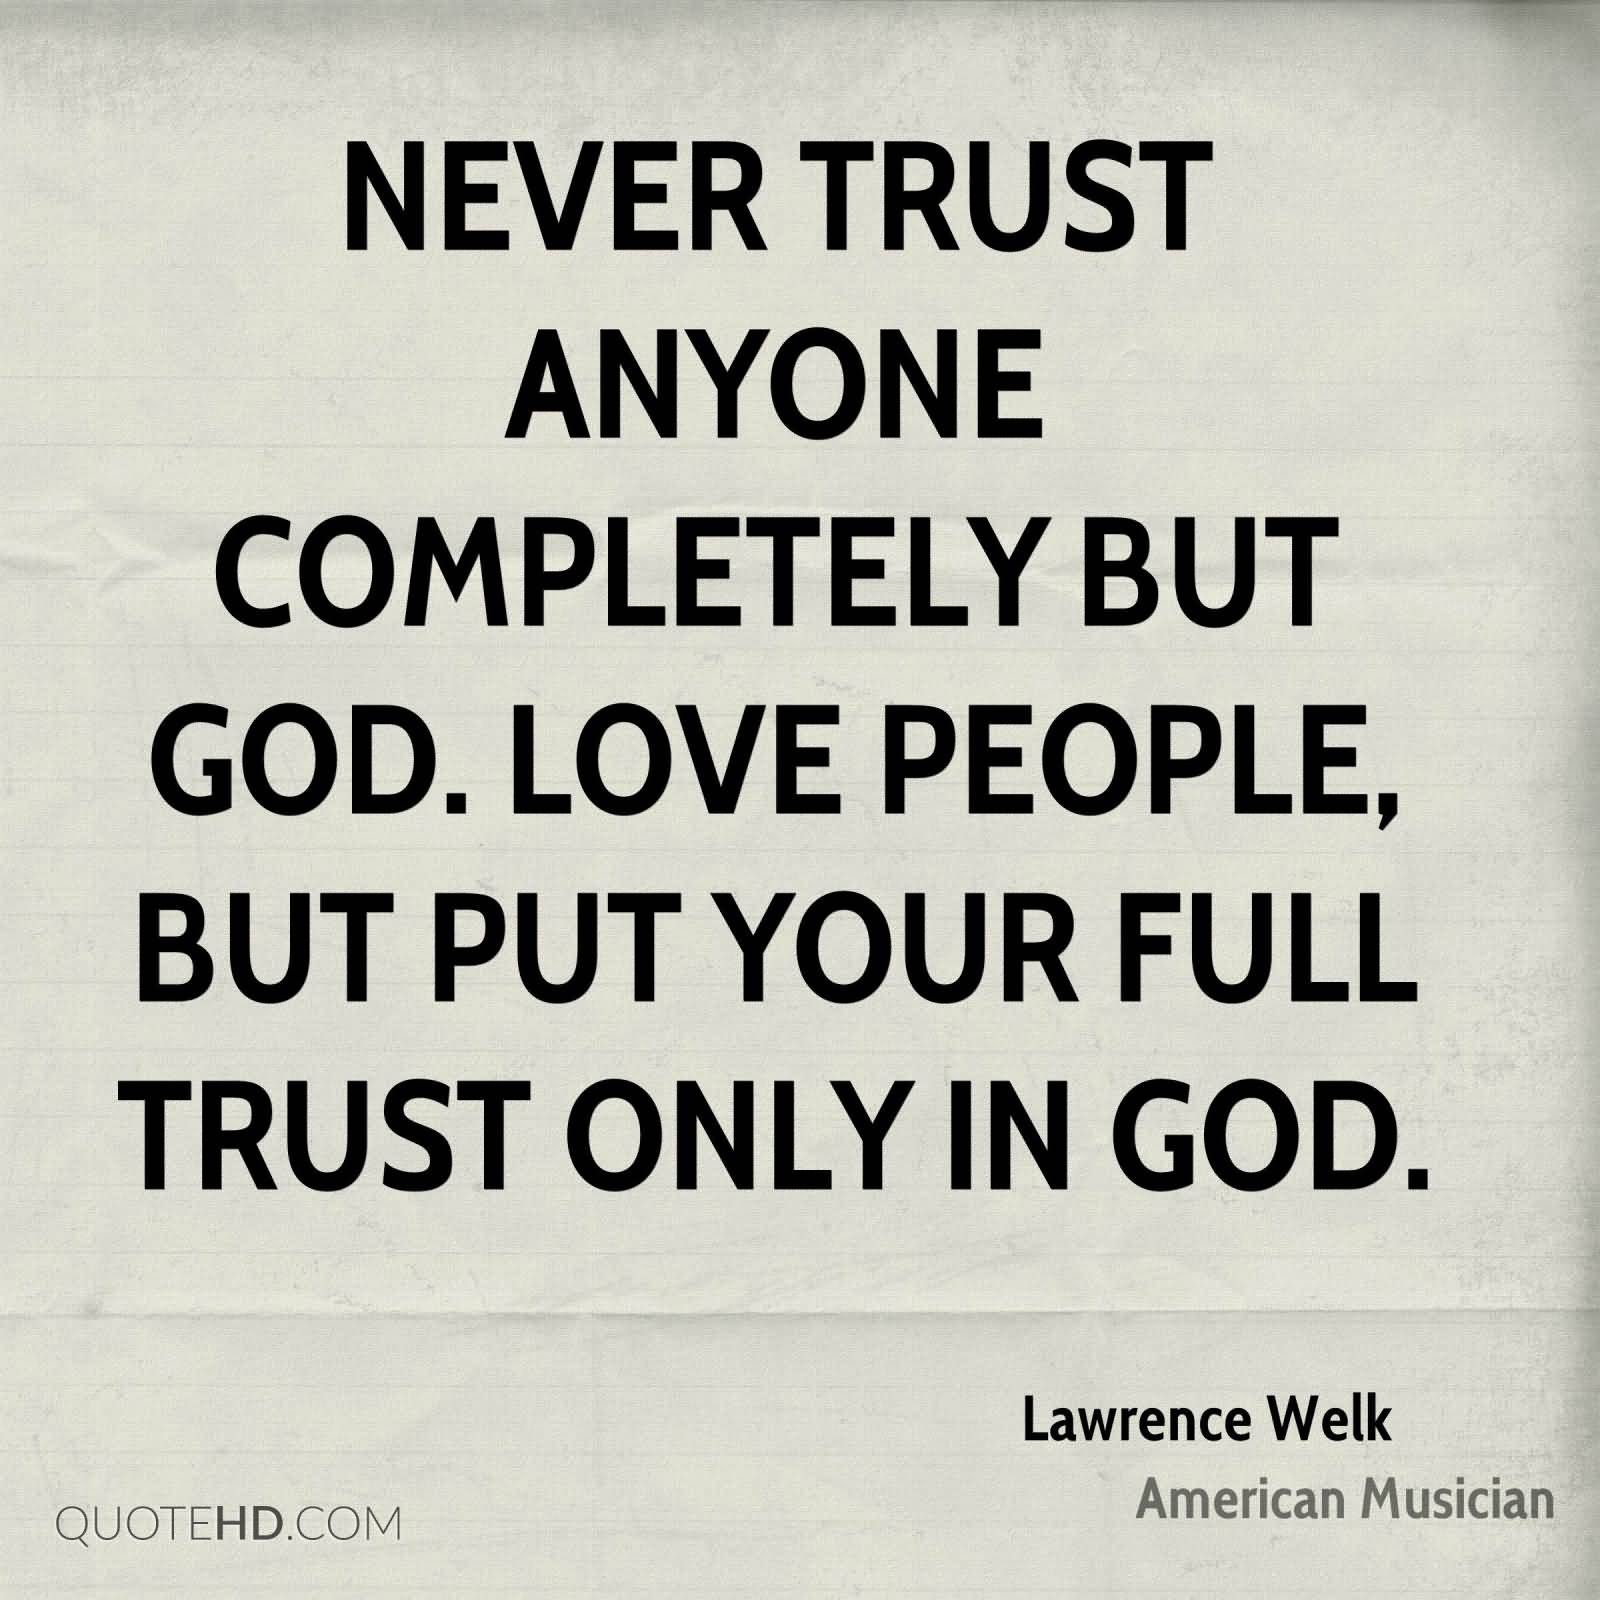 51 Famous Never Trust Quotes And Quotations Collection Parryzcom